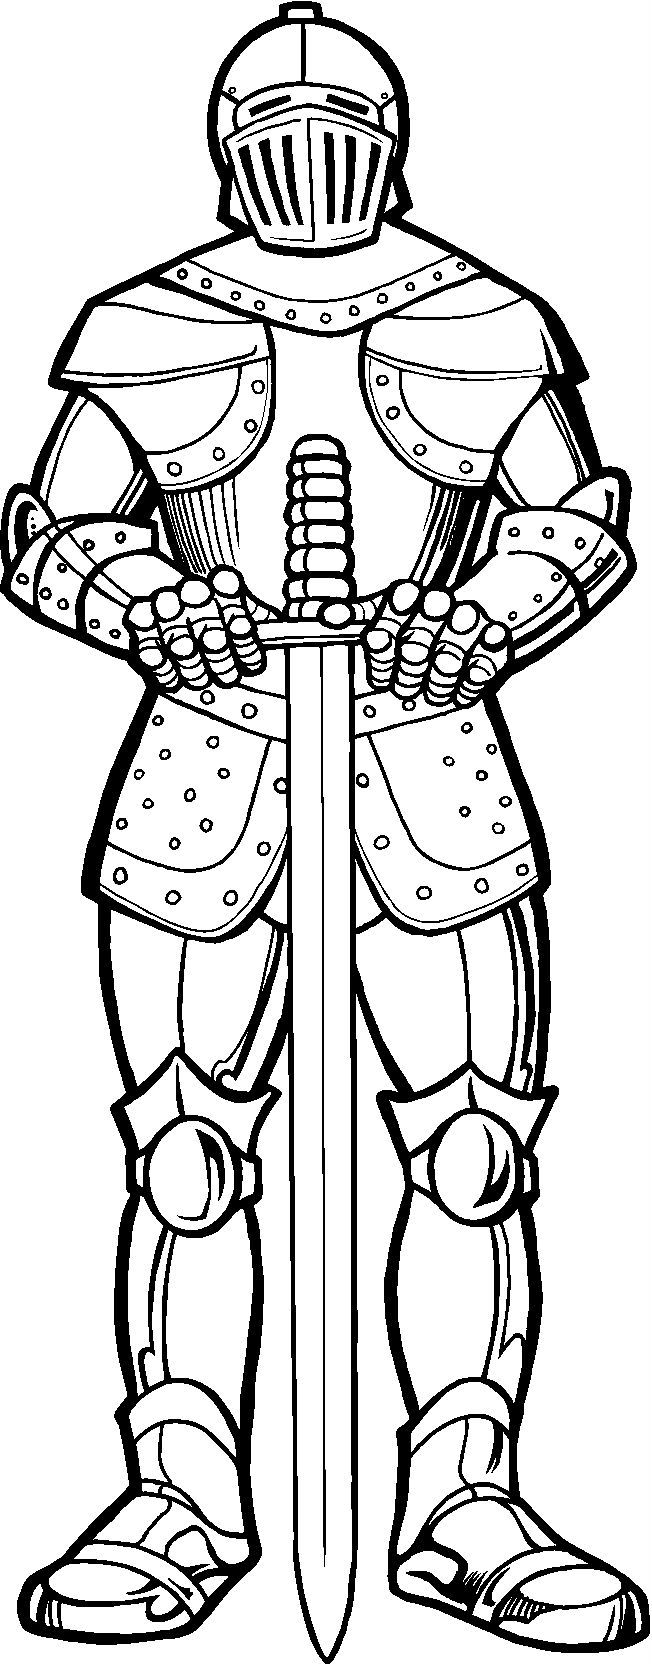 Coloring pages quilt patterns